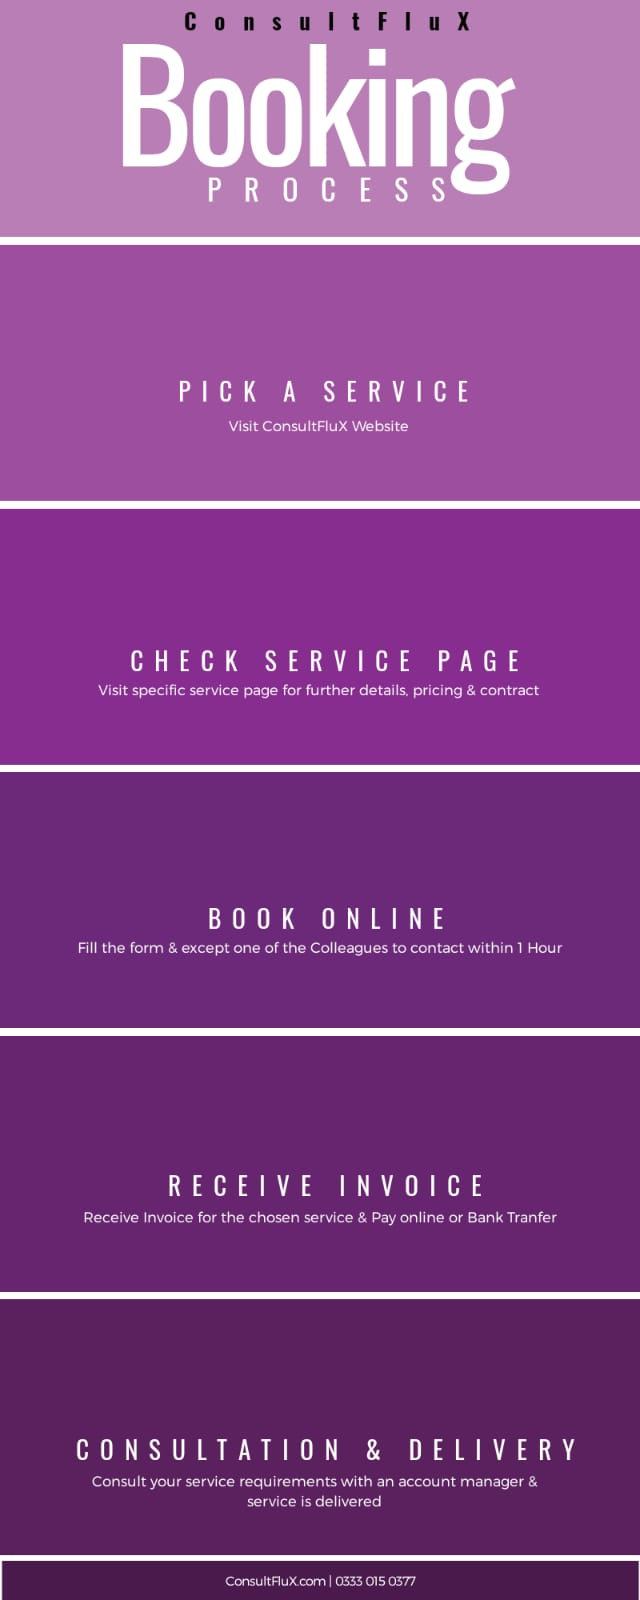 ConsultFluX Booking Process.jpeg